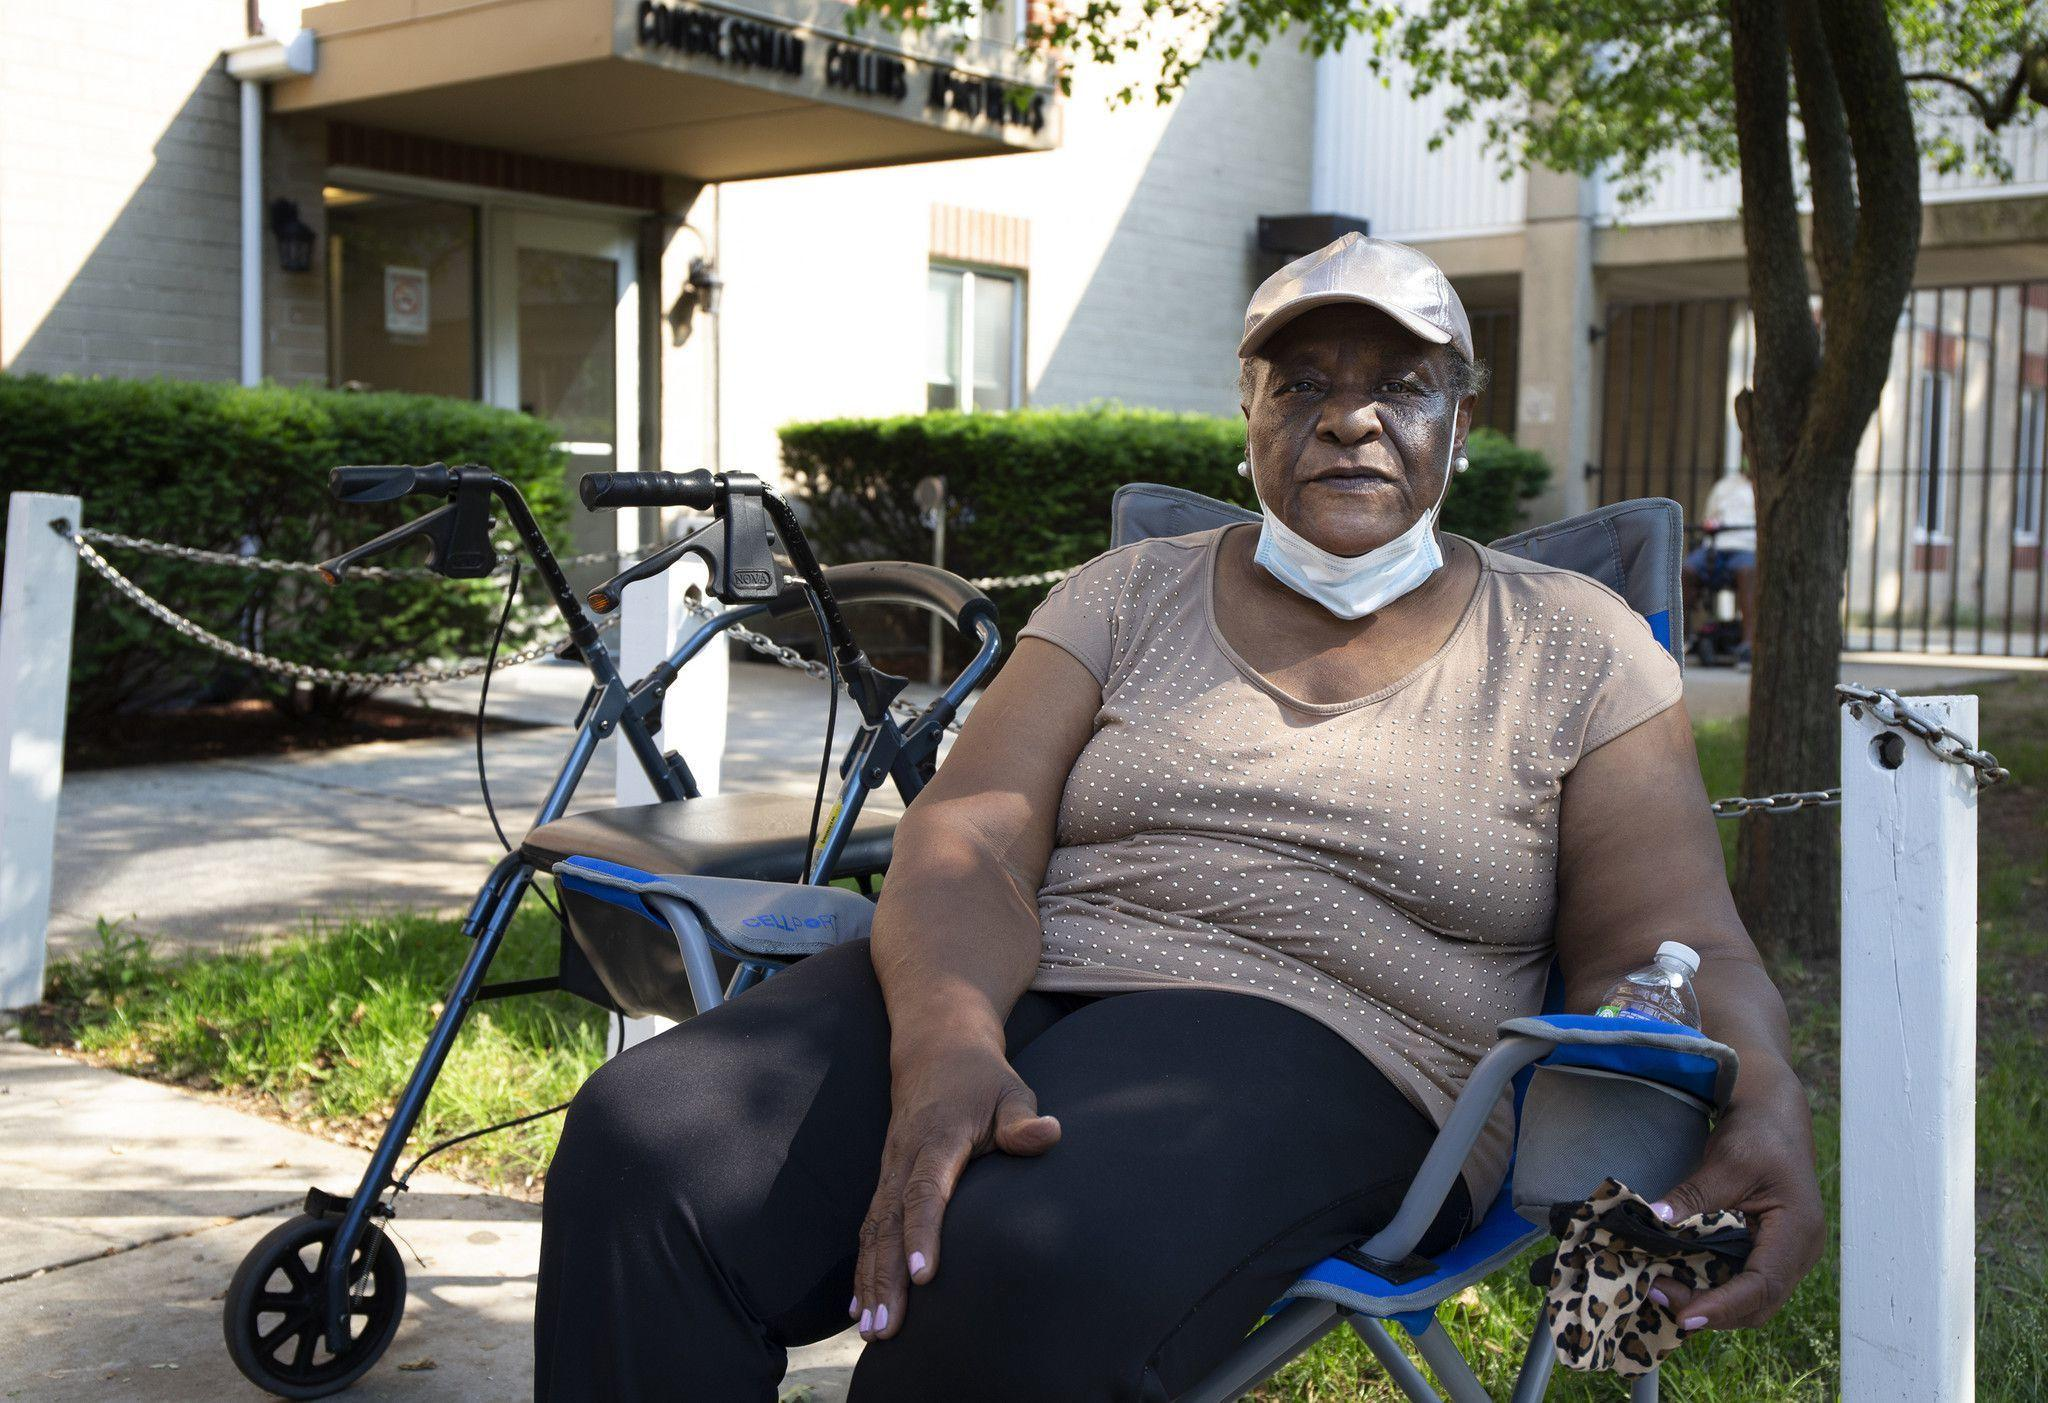 Ordinance to require more COVID-19 help for residents of large Chicago senior buildings sent to City Council for vote